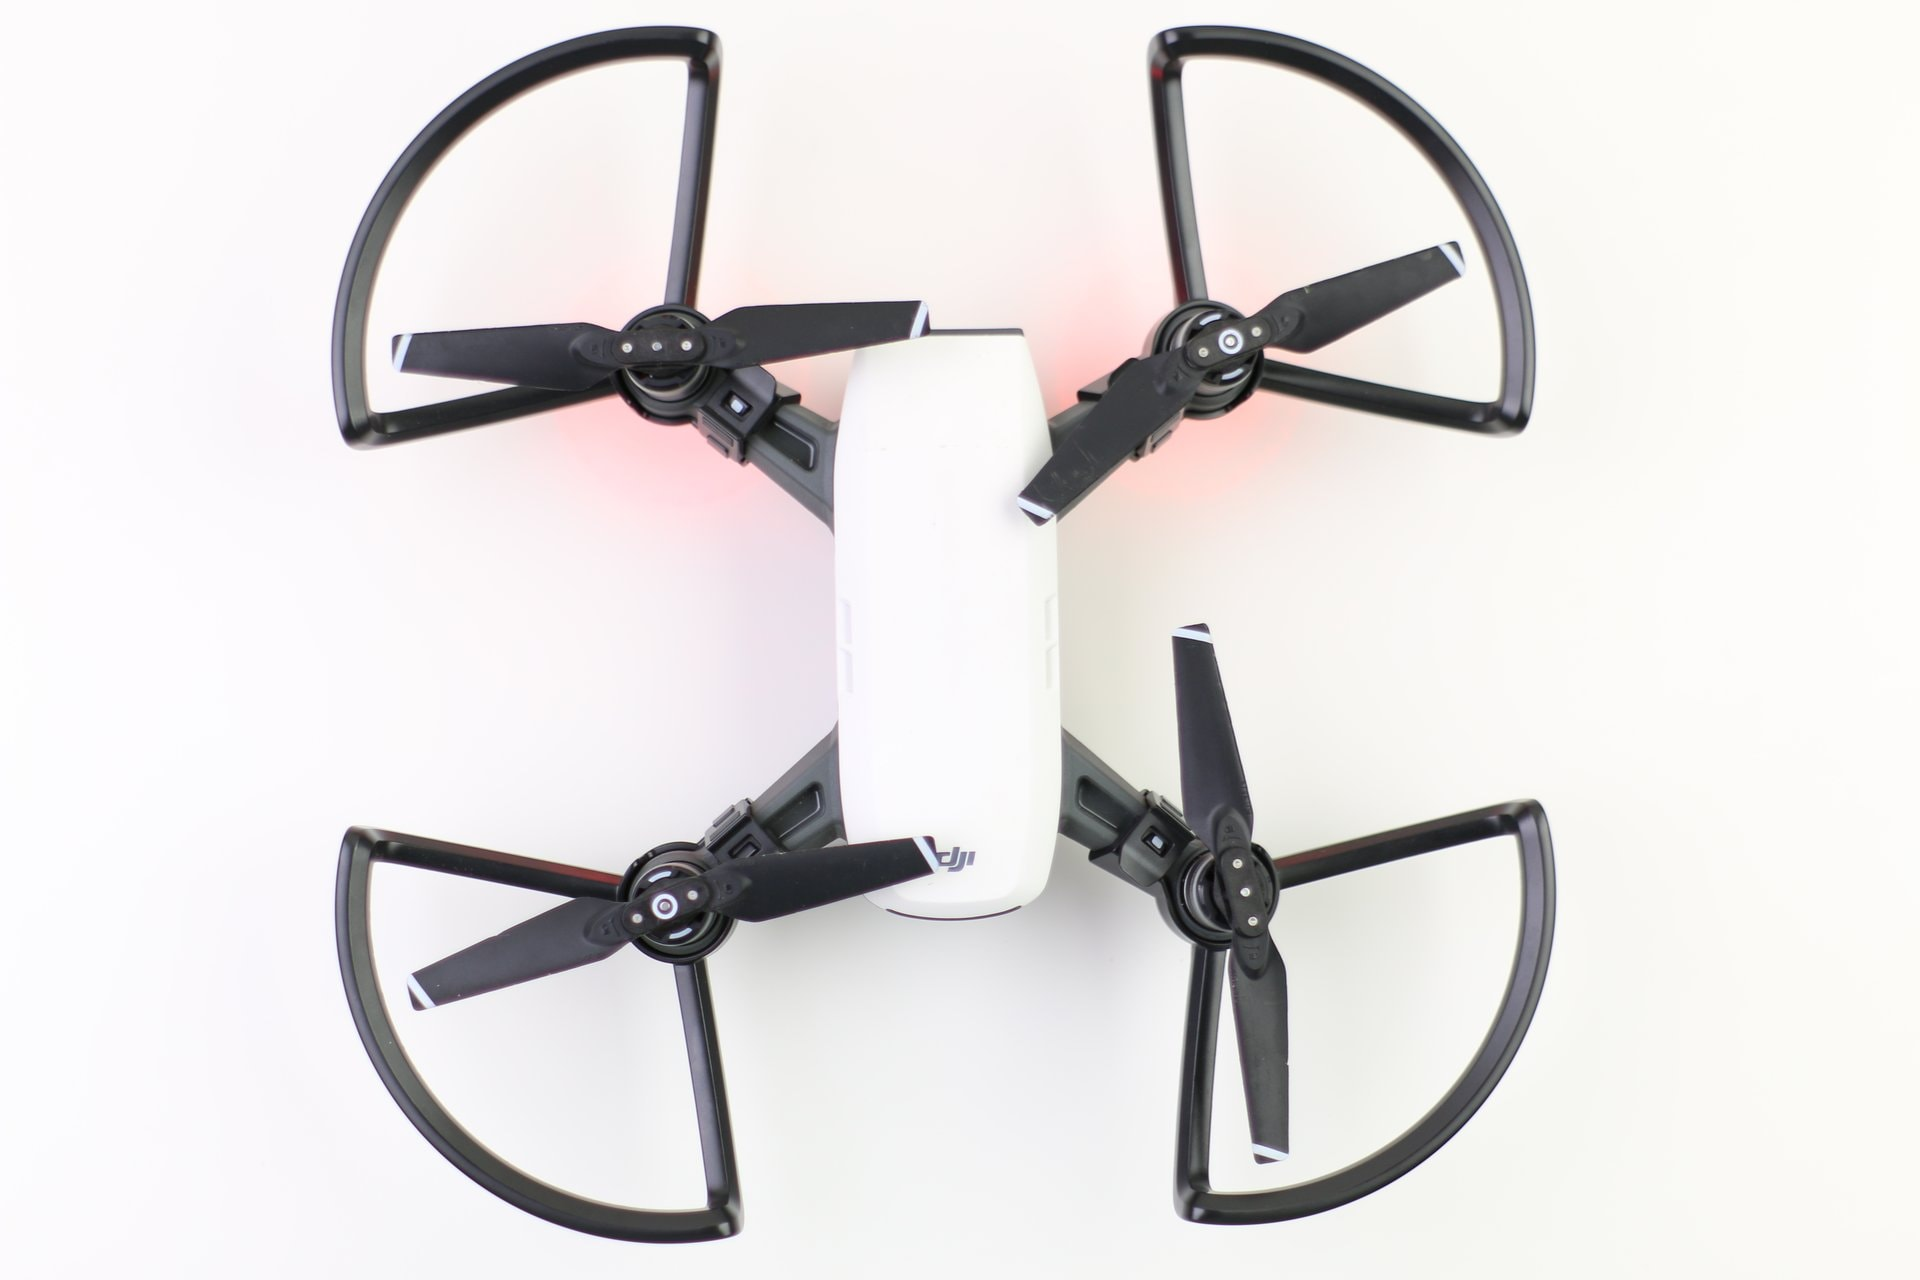 DJI Spark Fly More Combo (7)